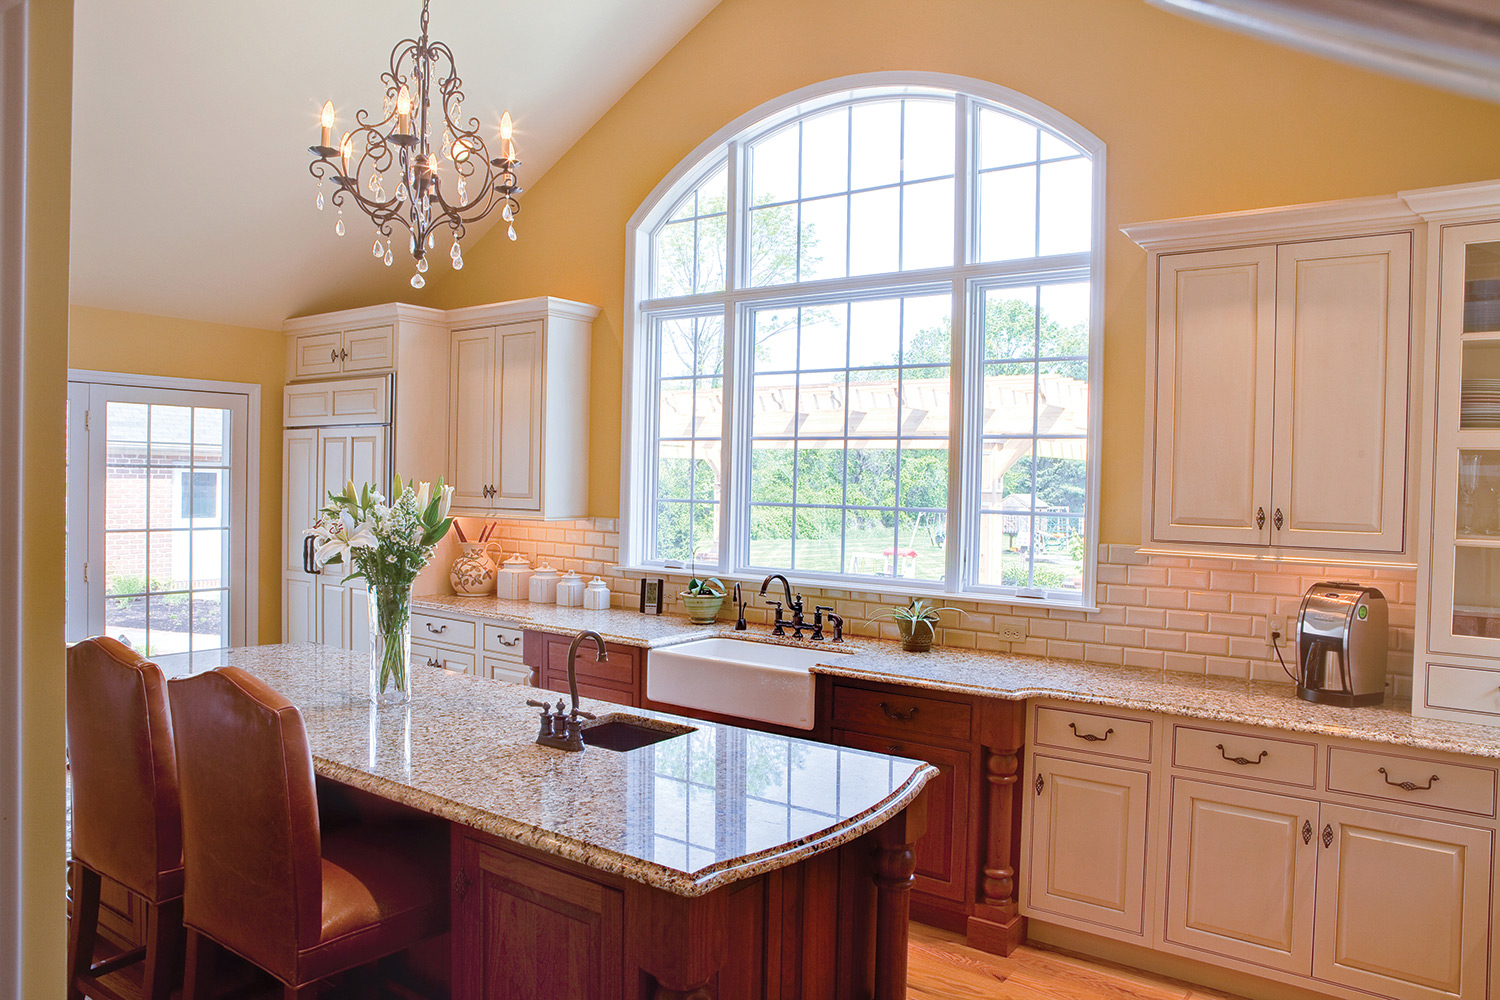 Marvin Windows From Century Building Materials of Long Island